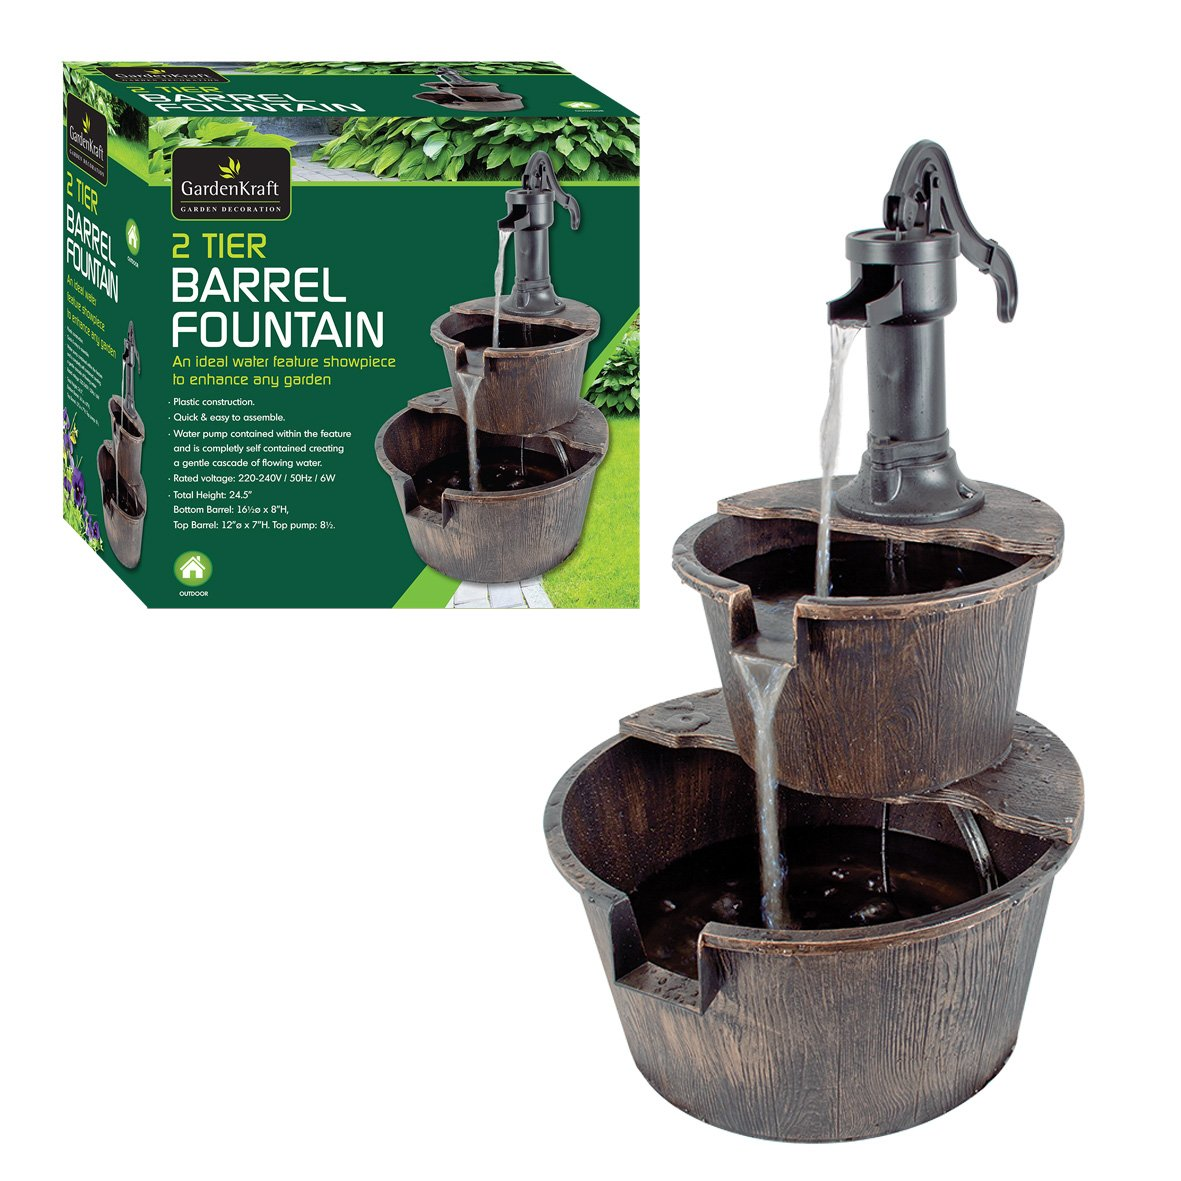 2 tier barrel water fountain with pump garden indoor amazoncouk garden u0026 outdoors